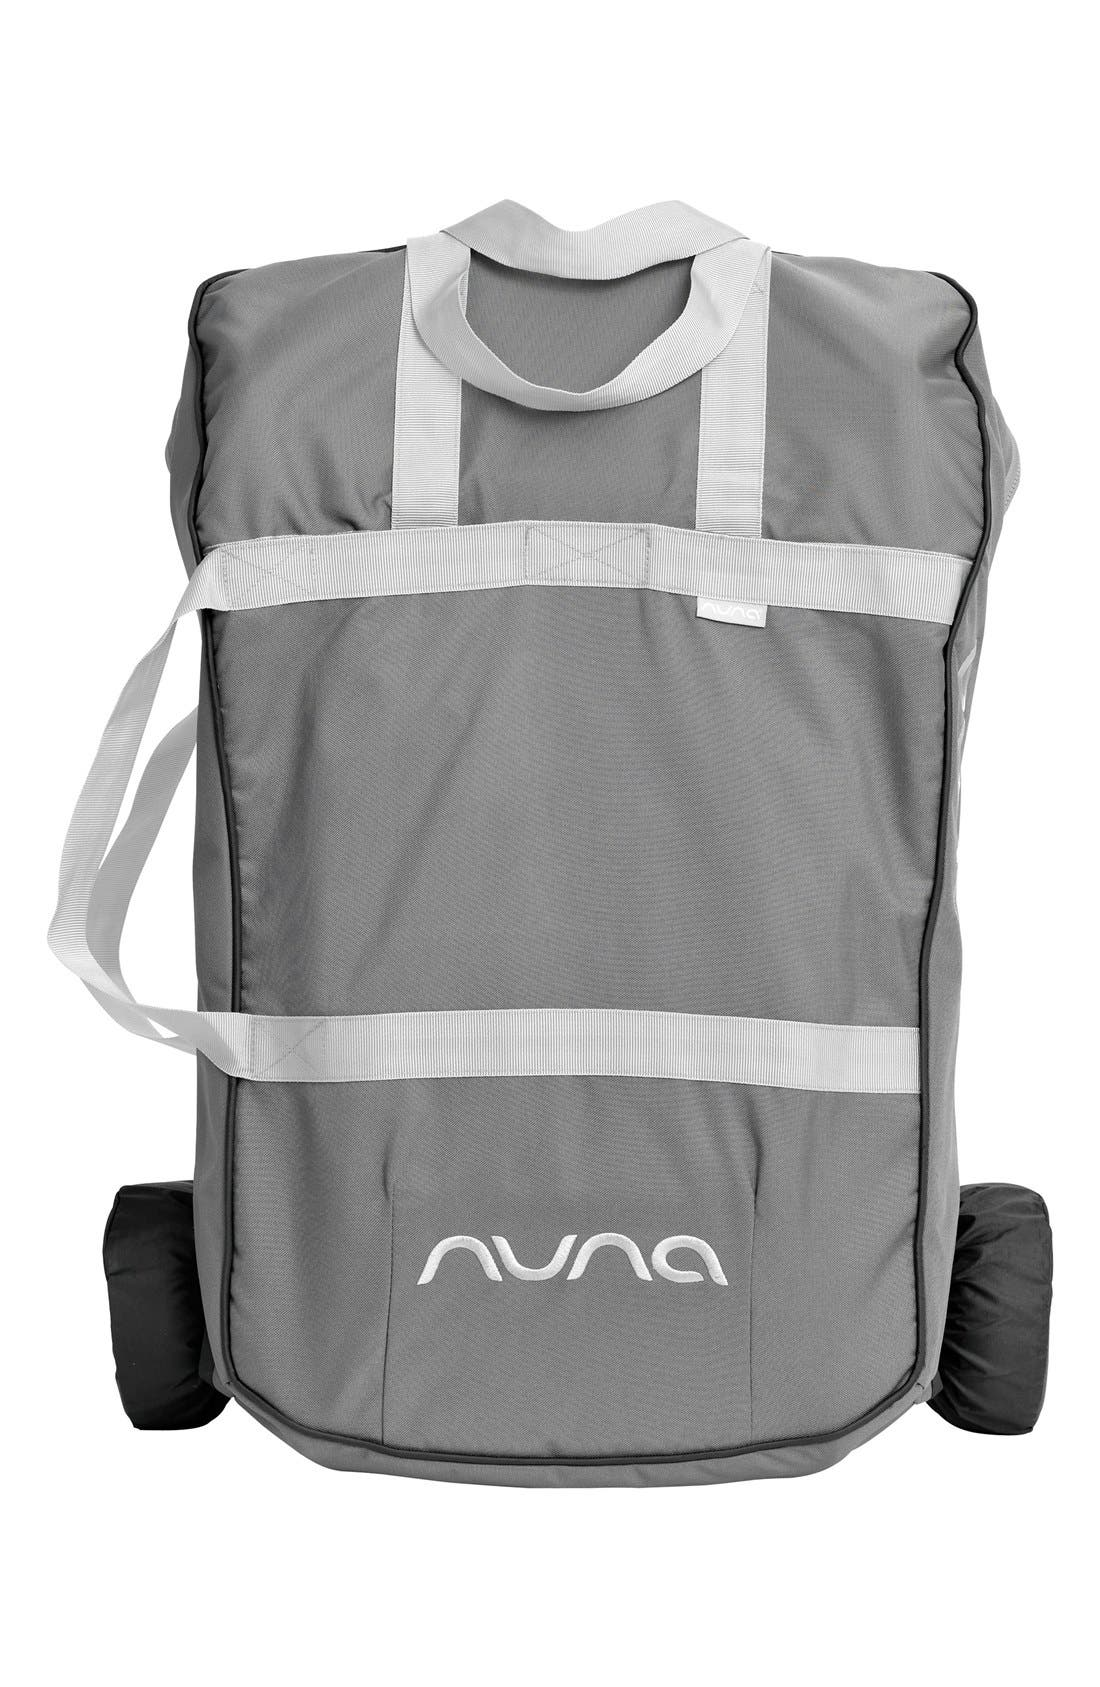 Main Image - nuna 'PEPP' Stroller Transport Bag